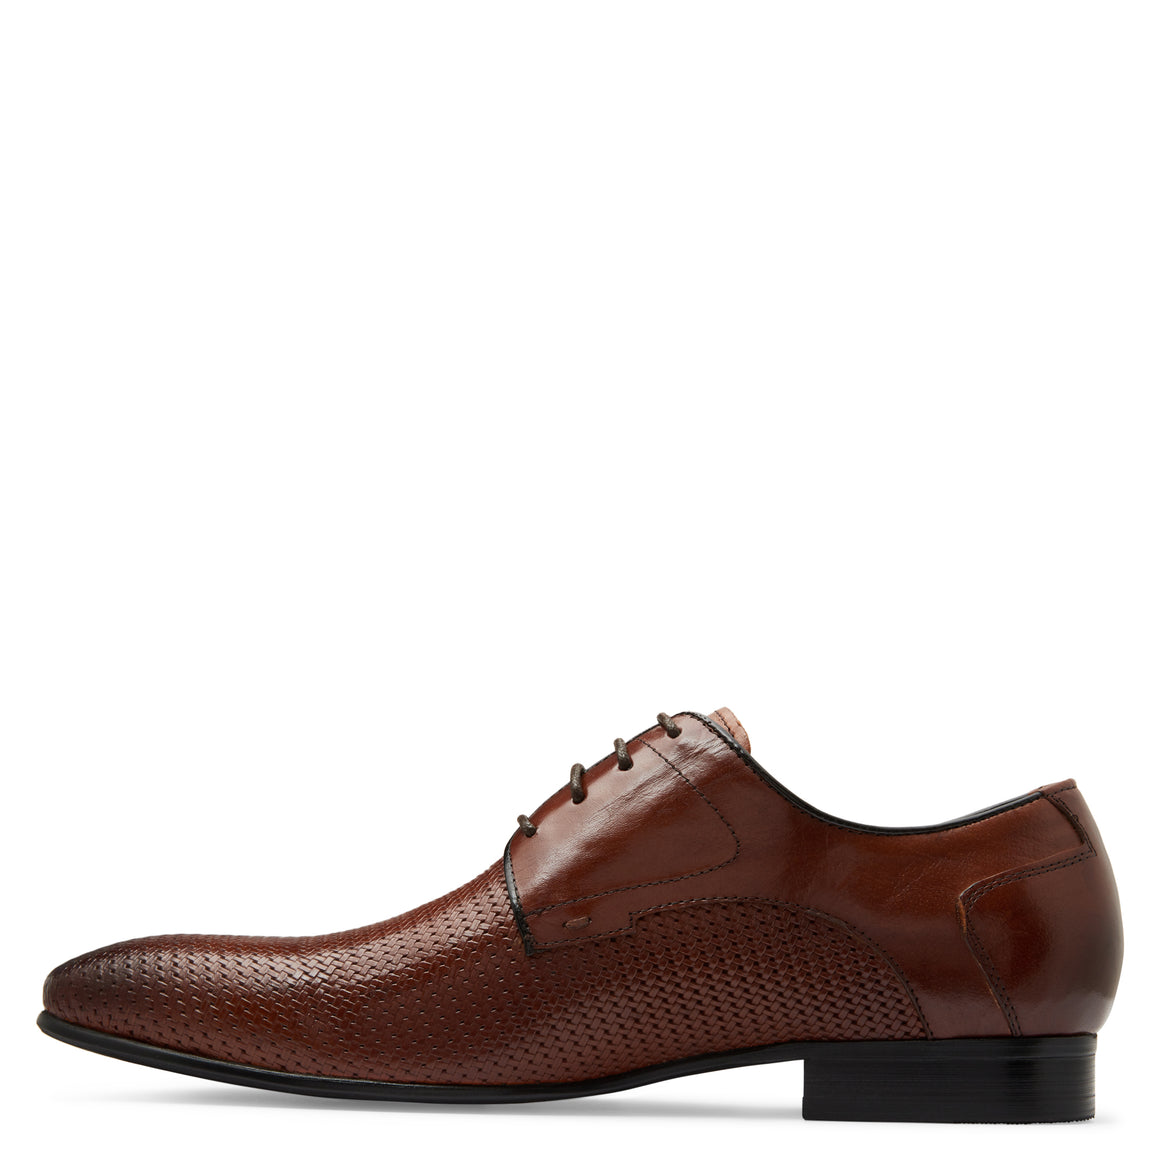 Chase Tan Derby Shoes